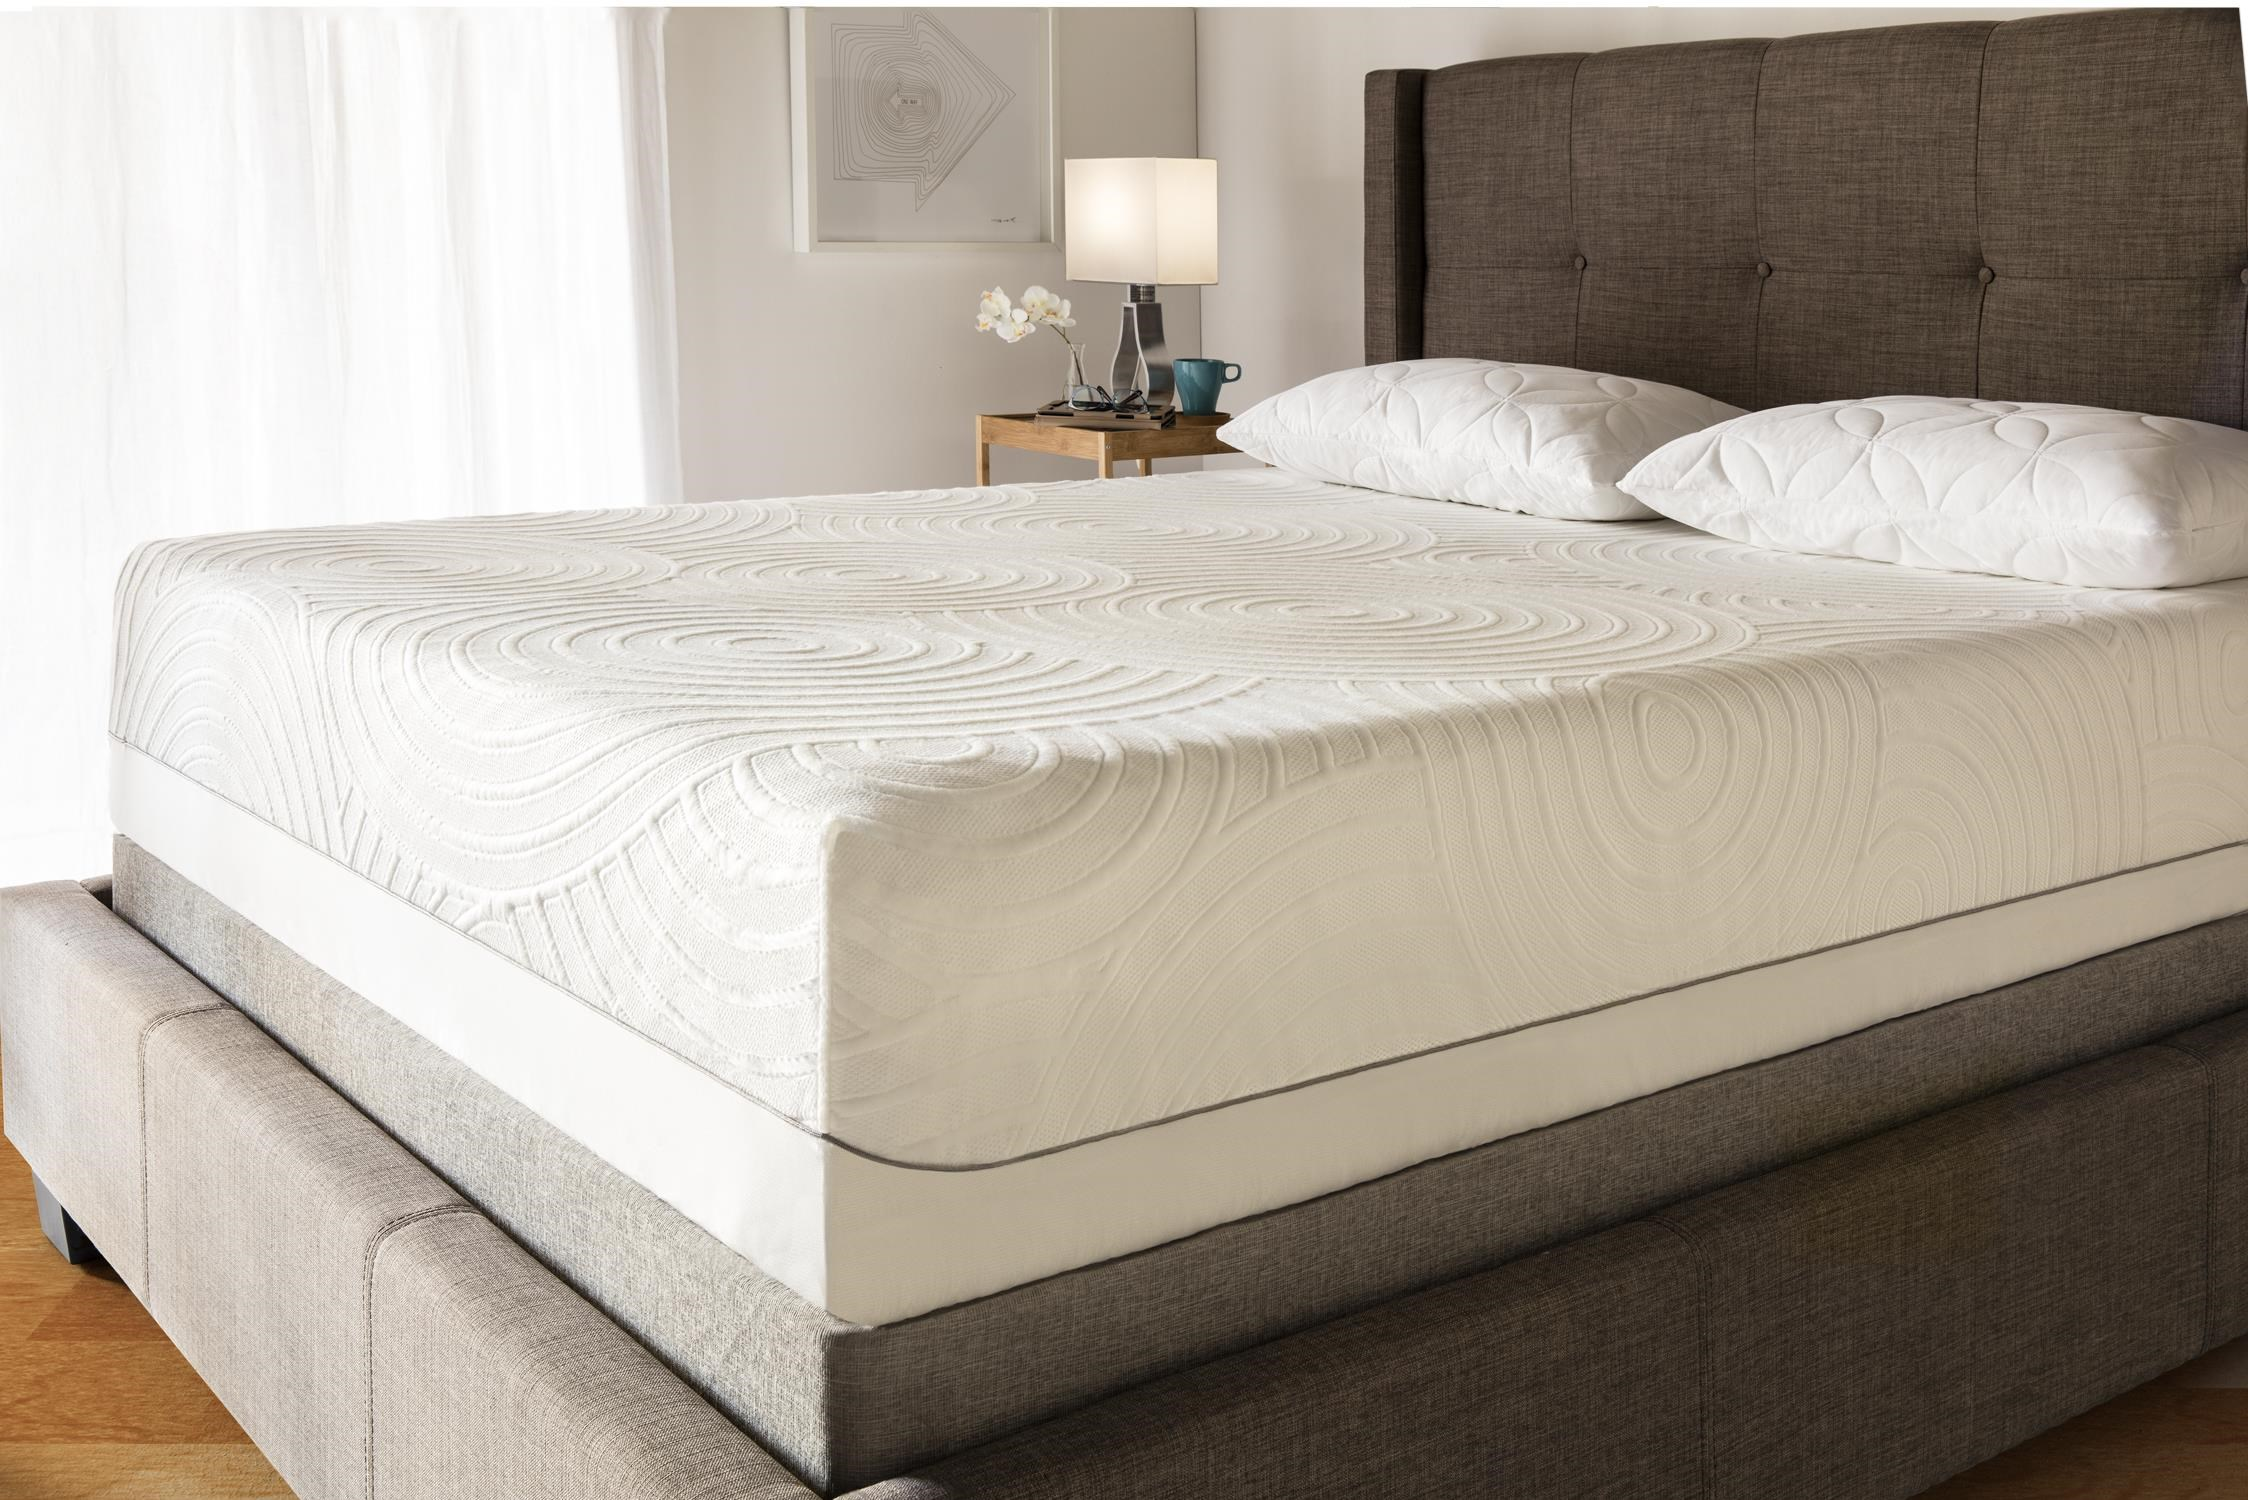 TEMPUR-Protect TEMPUR-Protect Queen Mattress Protector by Tempur-Pedic® at SlumberWorld